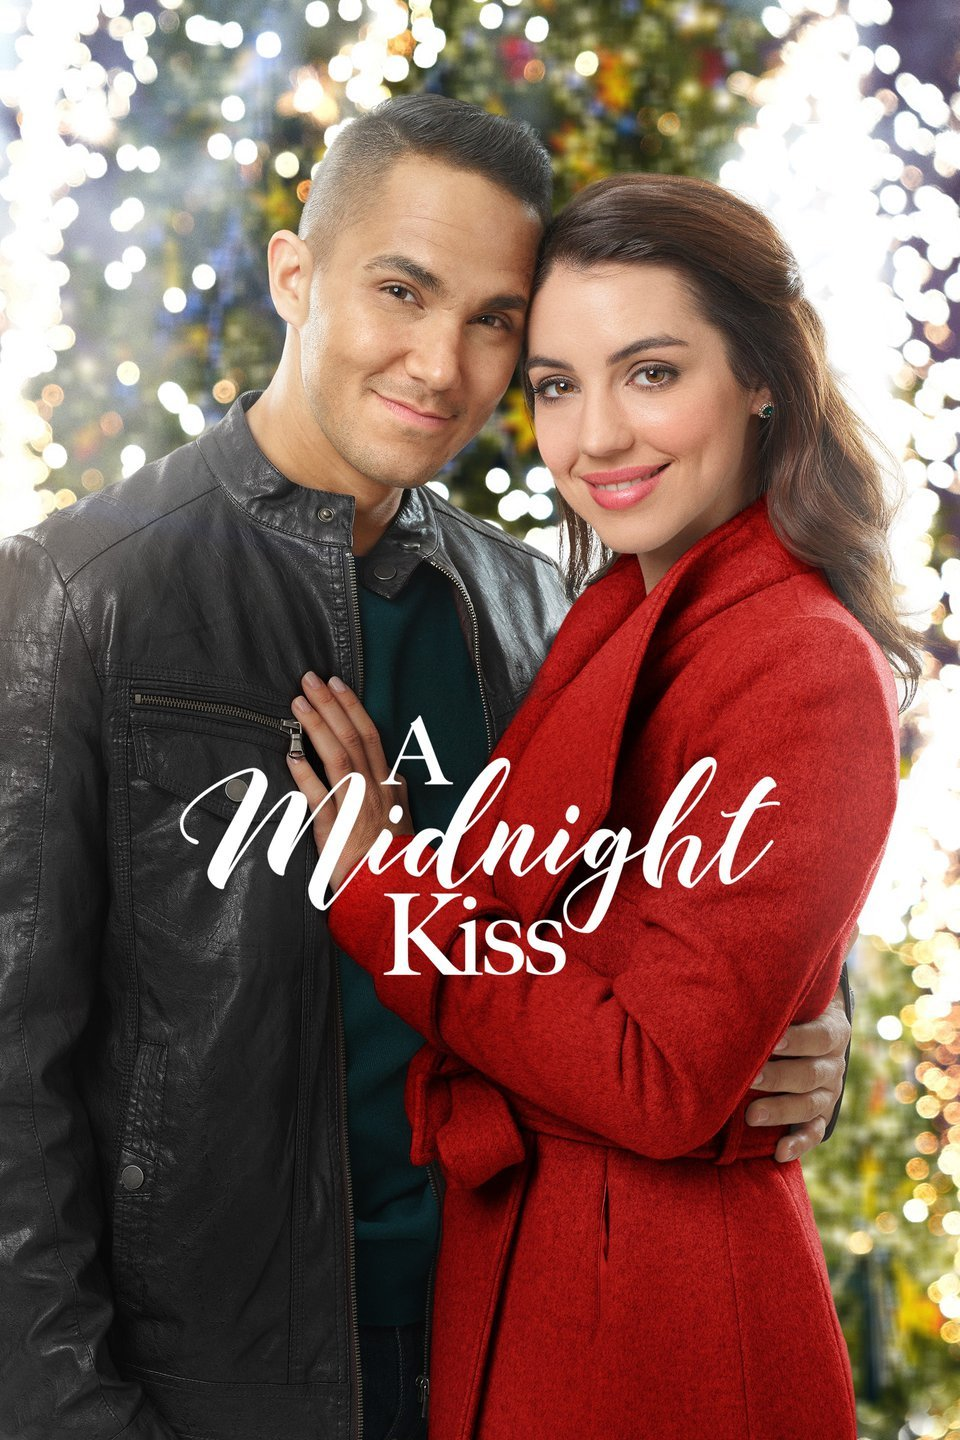 A Christmas Kiss Cast.Hitched For The Holidays 2012 October Kiss 2015 A